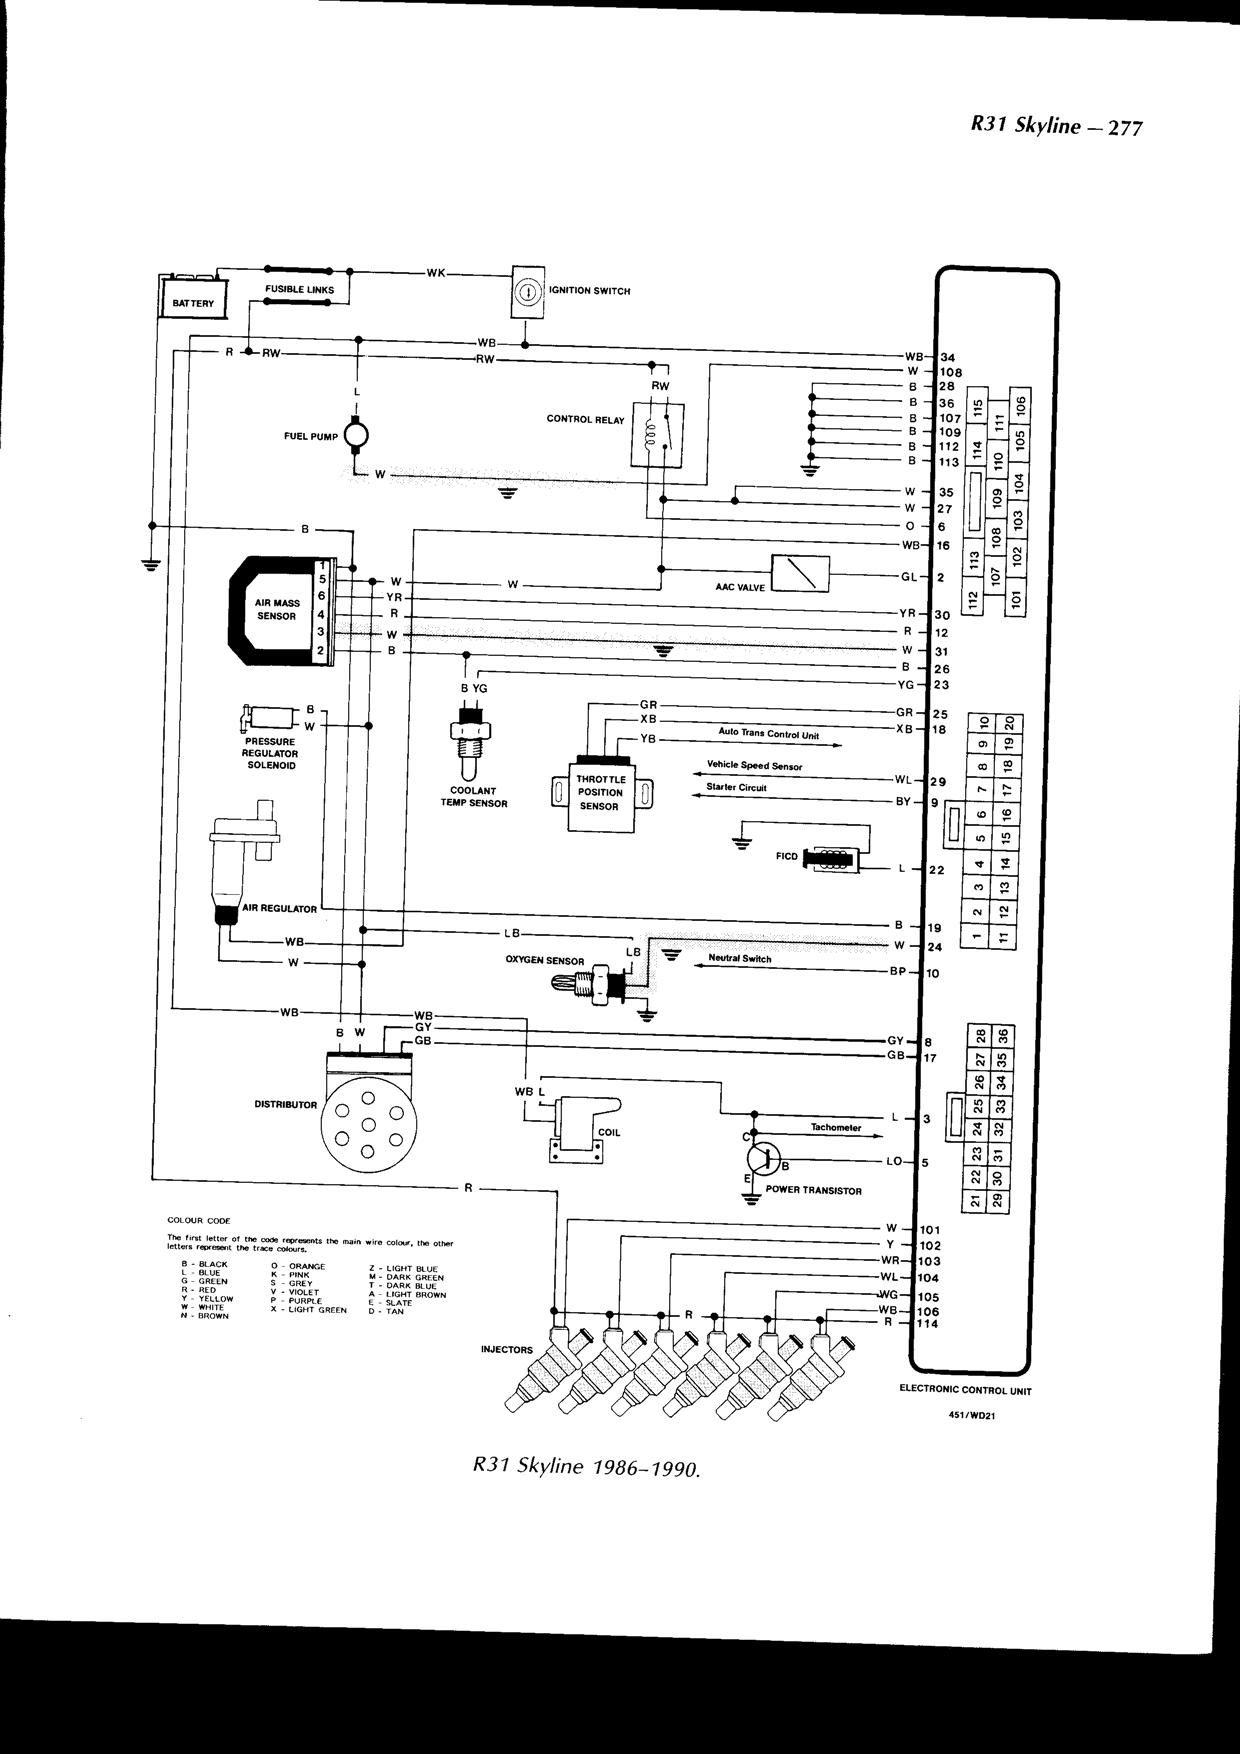 Incredible Nissan 1400 Wiring Diagram Pdf Wiring Diagram G9 Monang Recoveryedb Wiring Schematic Monangrecoveryedborg